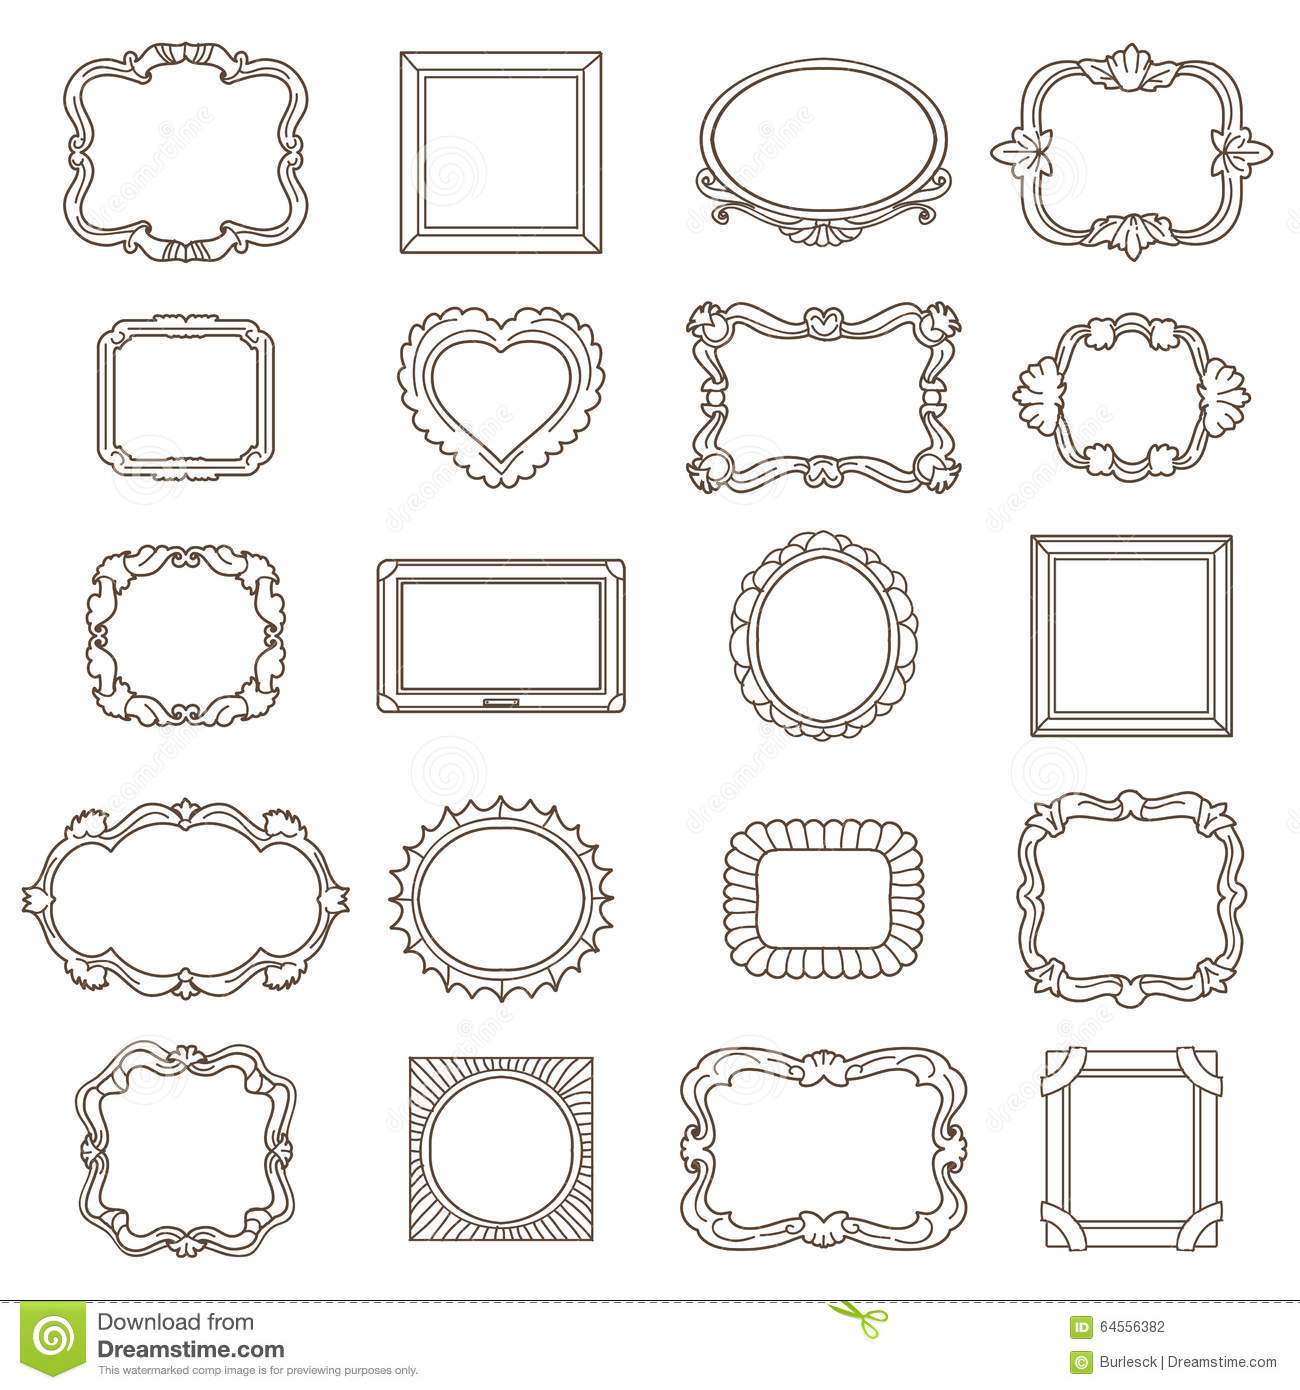 Vintage hand drawn frames for greetings and stock vector for Decoraciones para hojas